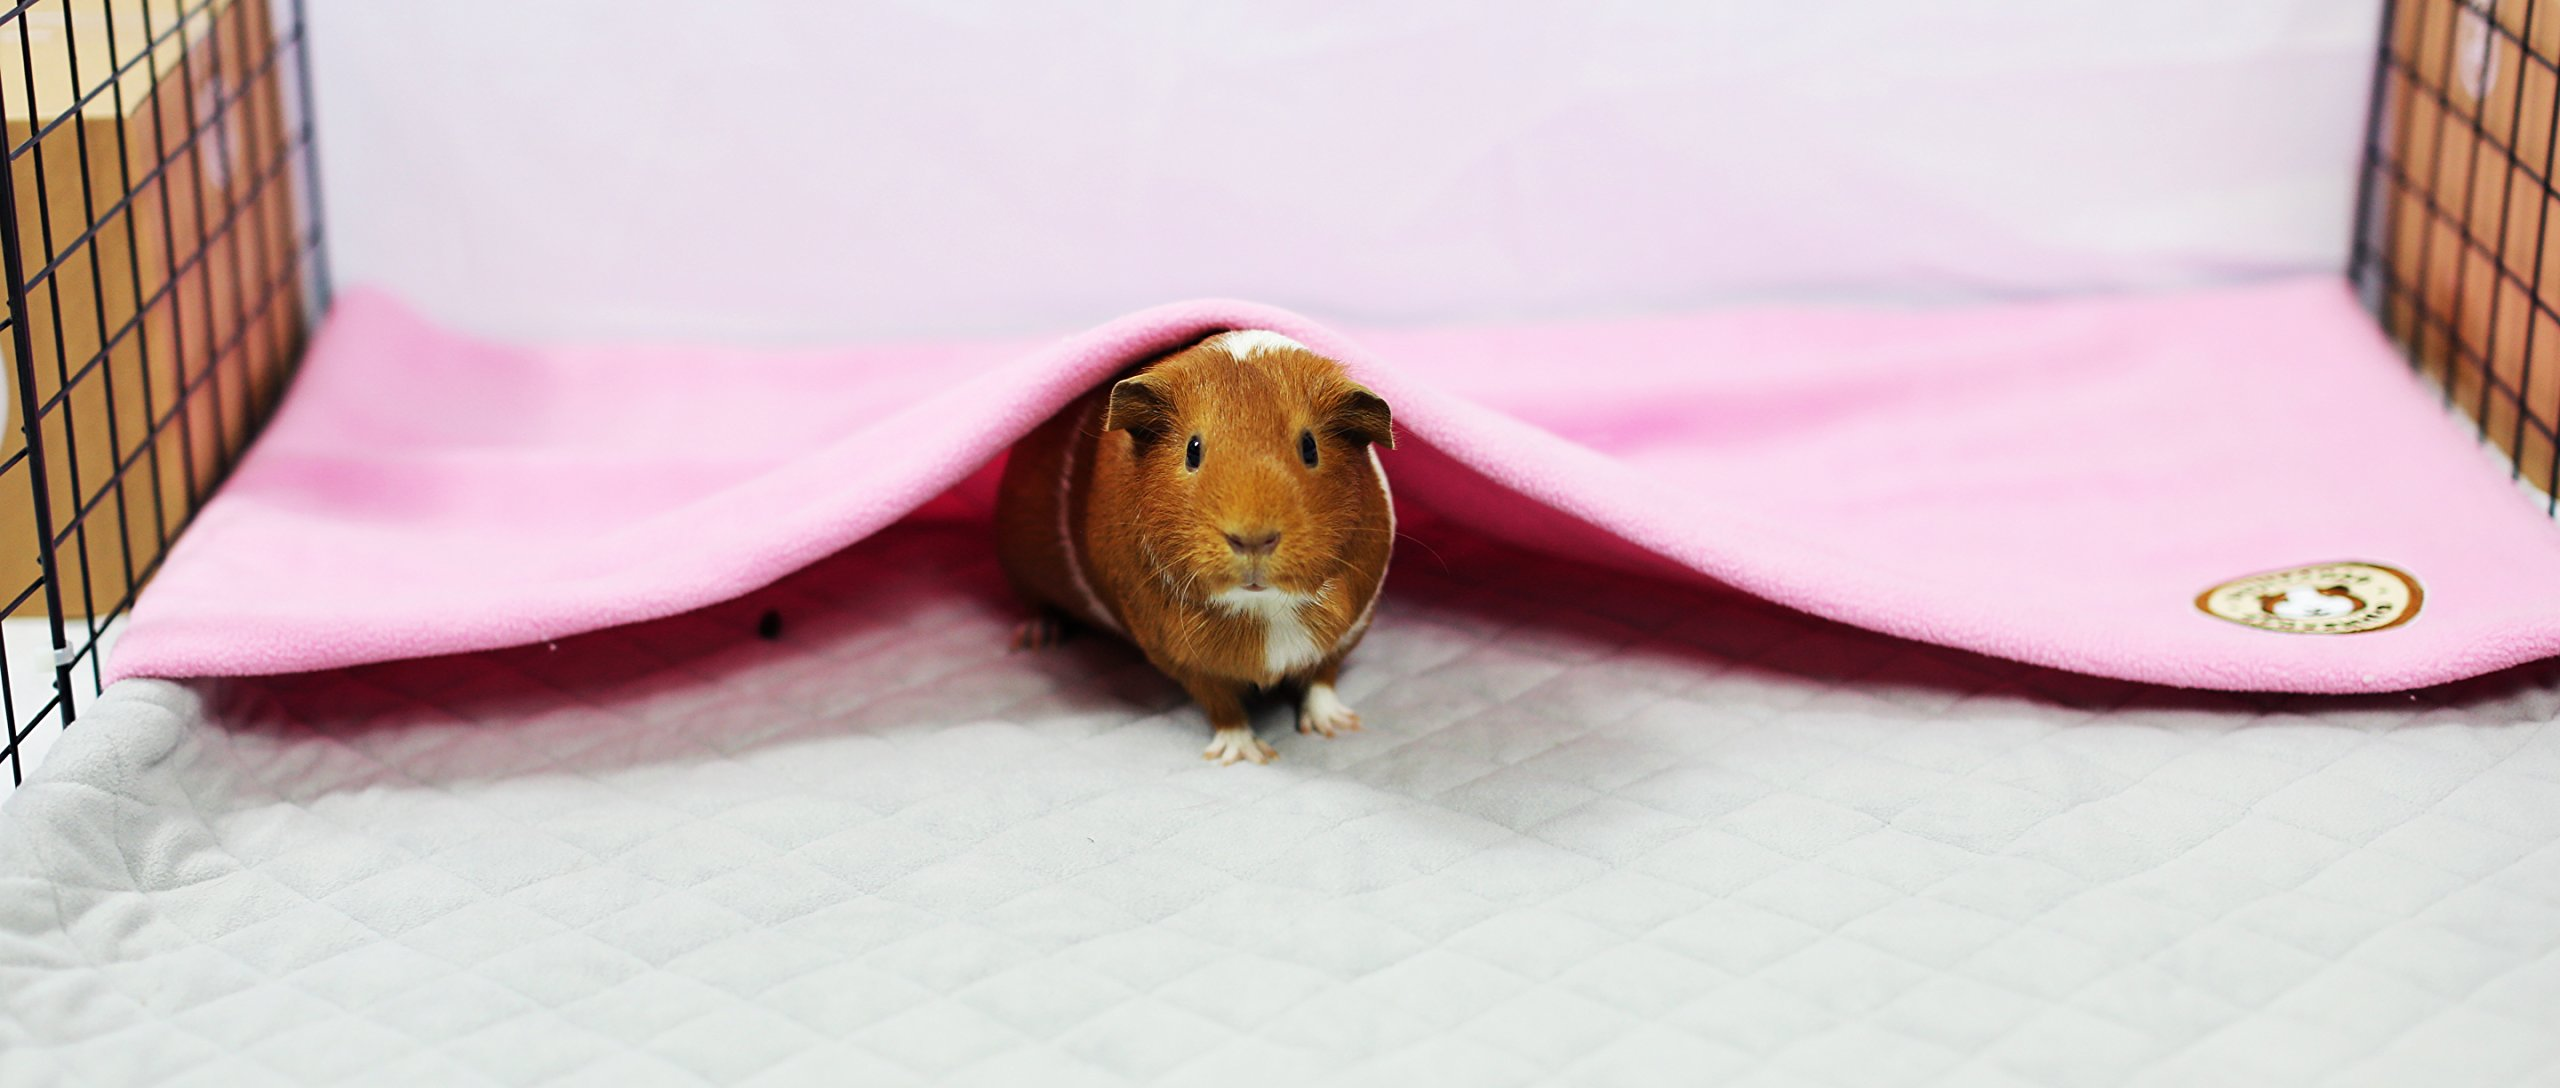 GuineaDad Fleece Liner 2.0 | Guinea Pig Fleece Cage Liners Bedding | Burrowing Pocket Sleeve | Extra Absorbent Antibacterial Bamboo | Waterproof | Available Various Cage Sizes by GuineaDad (Image #1)